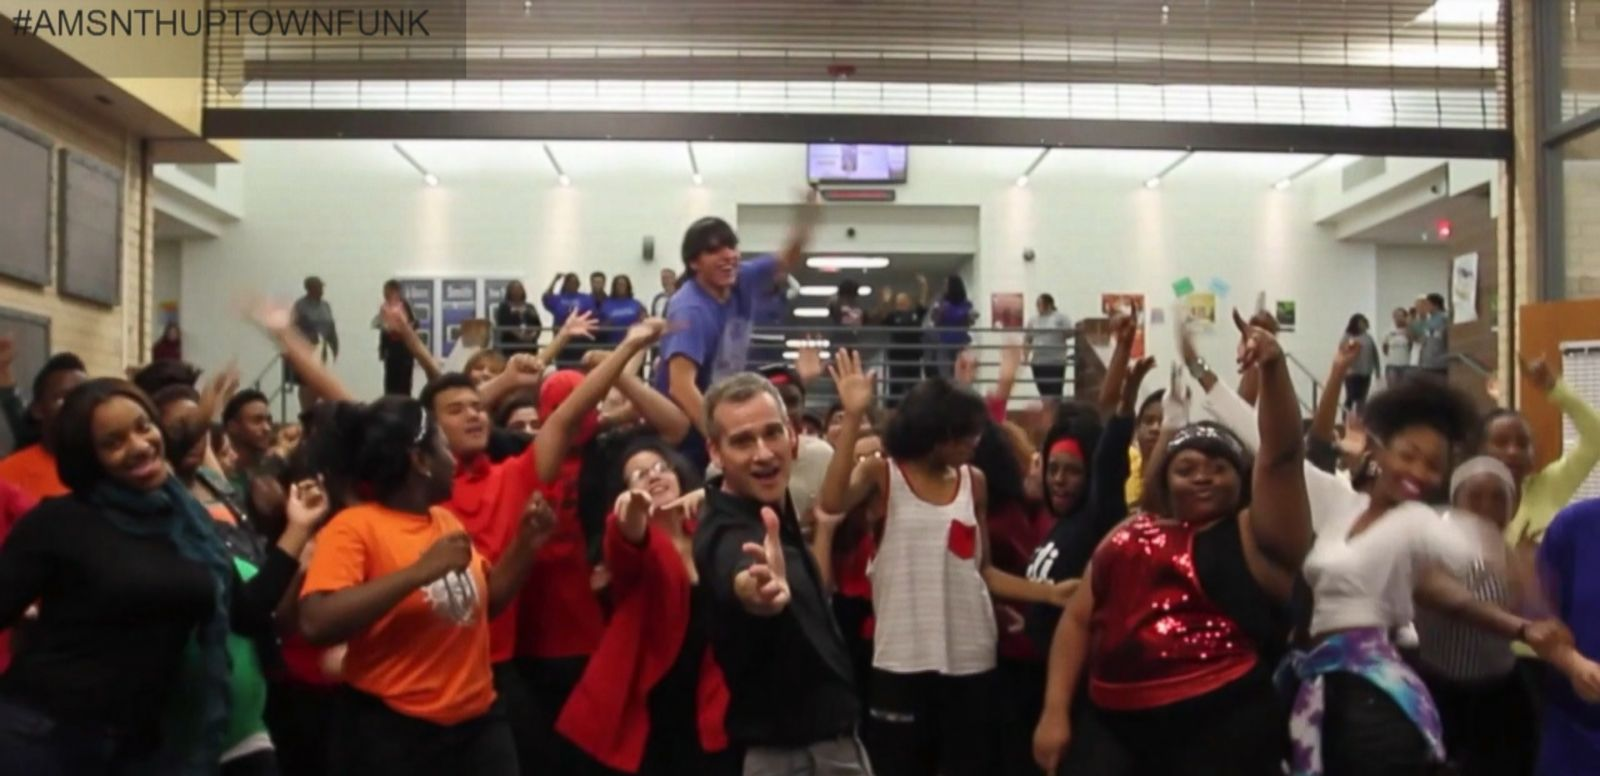 VIDEO: Nearly 200 students from a Dallas high school danced their way through the Bruno Mars song.